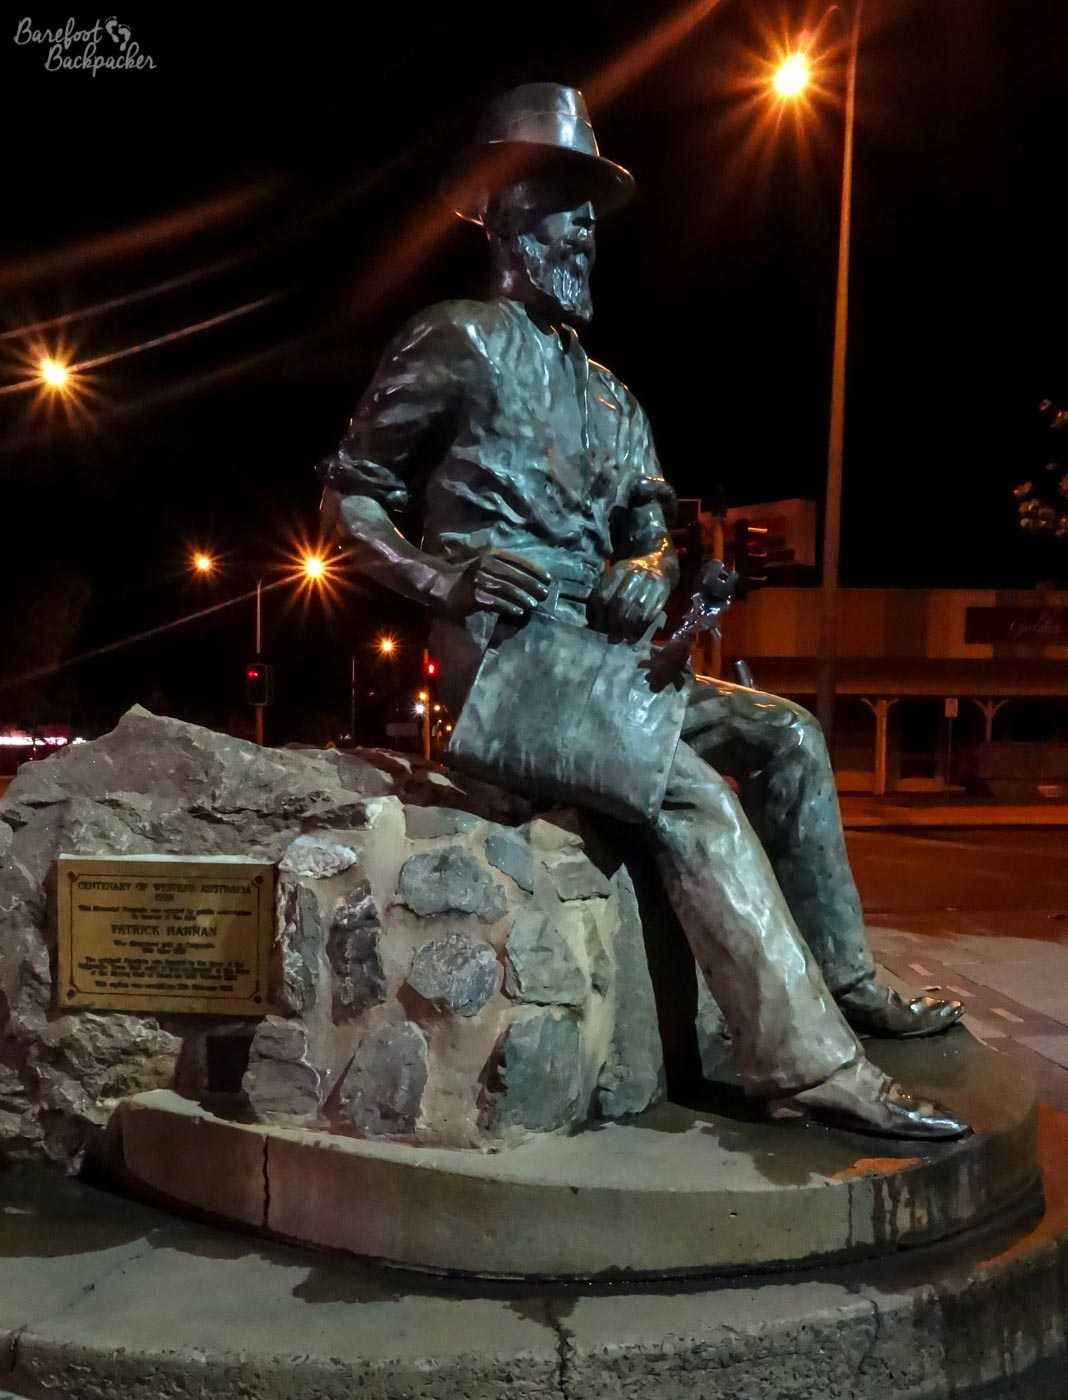 Statue - actually a memorial fountain - of Patrick Hannan, the founder of Kalgoorlie. He discovered gold here on 19 June 1893.